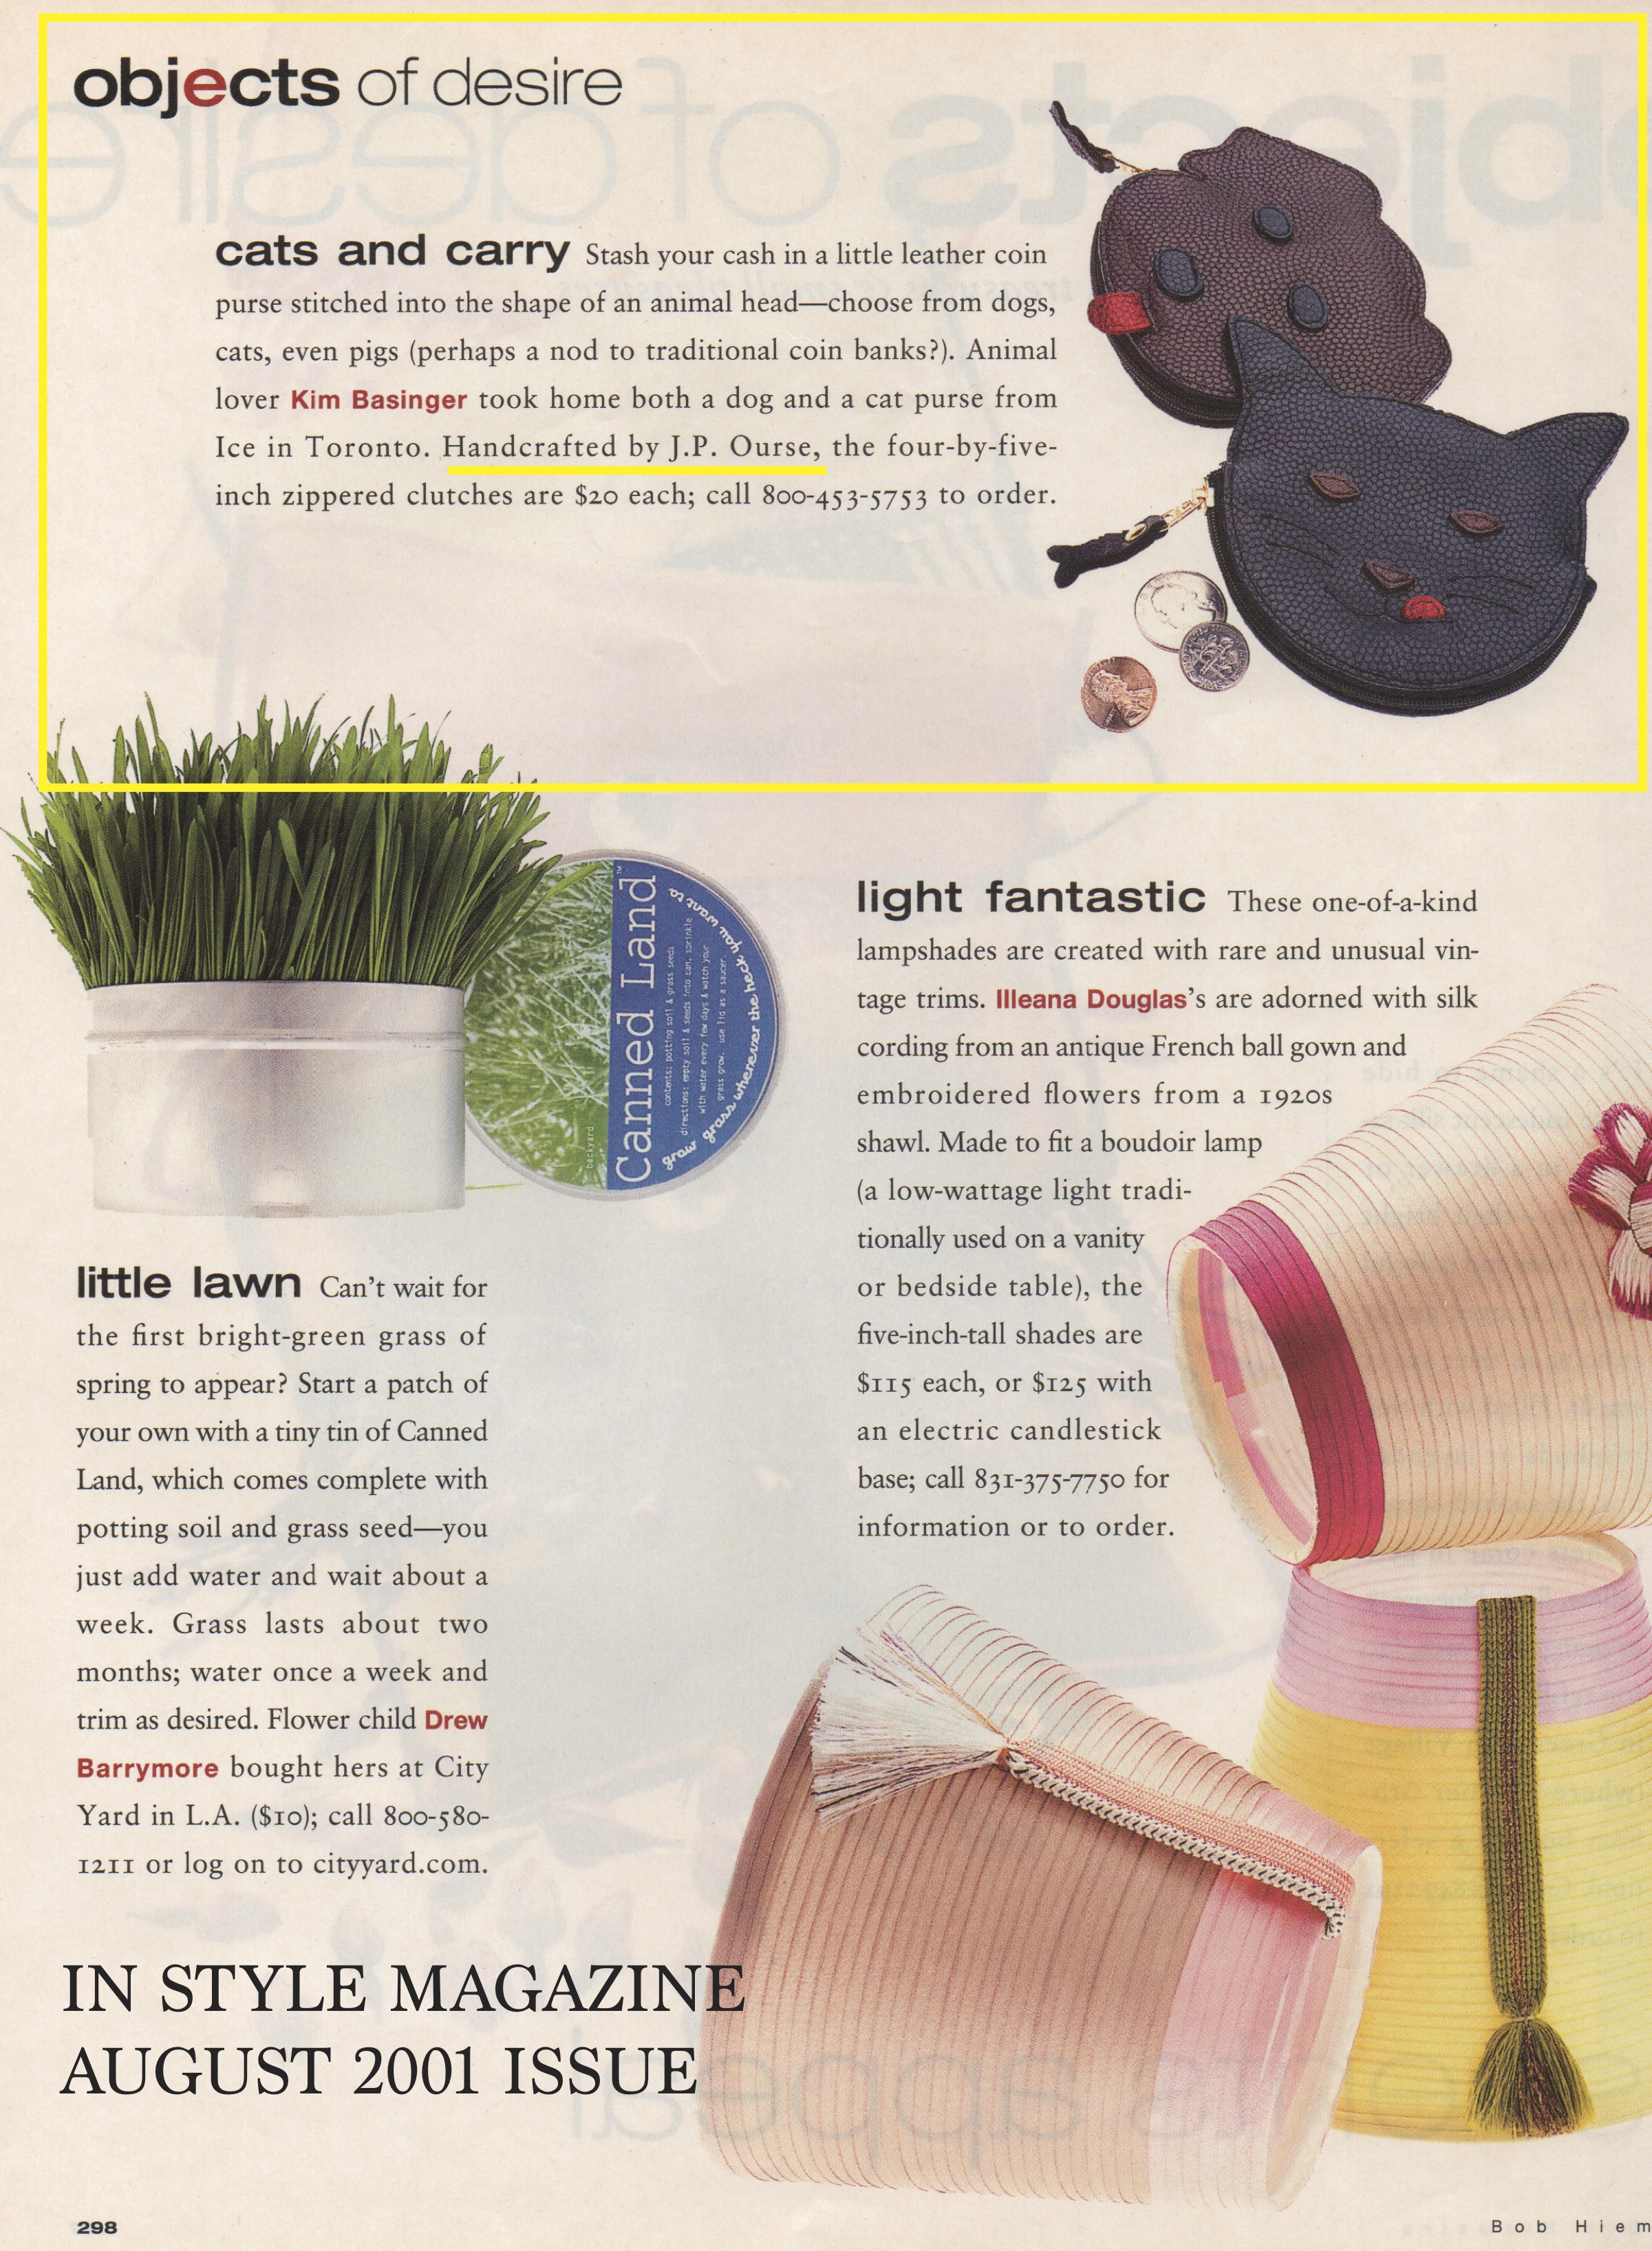 Featured in In Style magazine for Dog and Cat Coin Purses purchased by Kim Bassinger